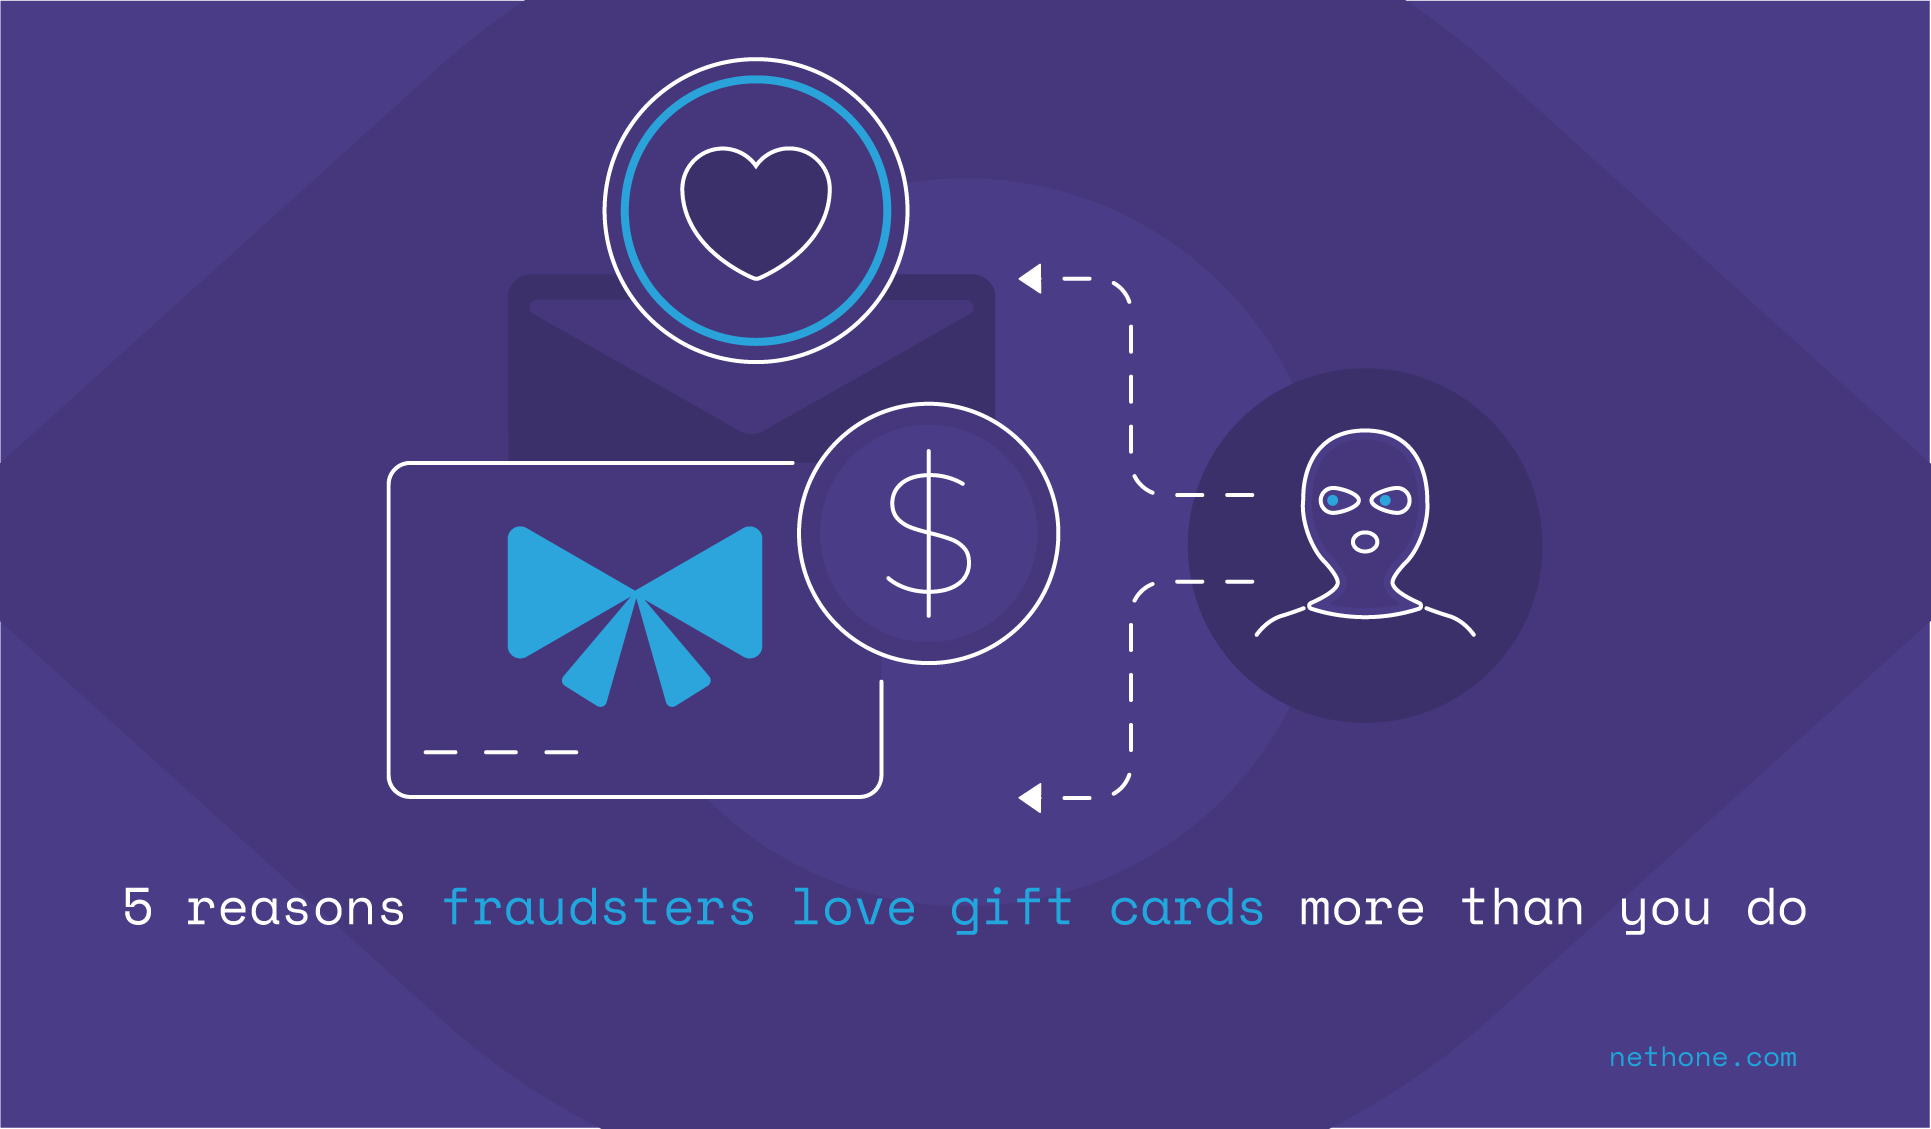 5 Reasons fraudsters love gift cards more than you do